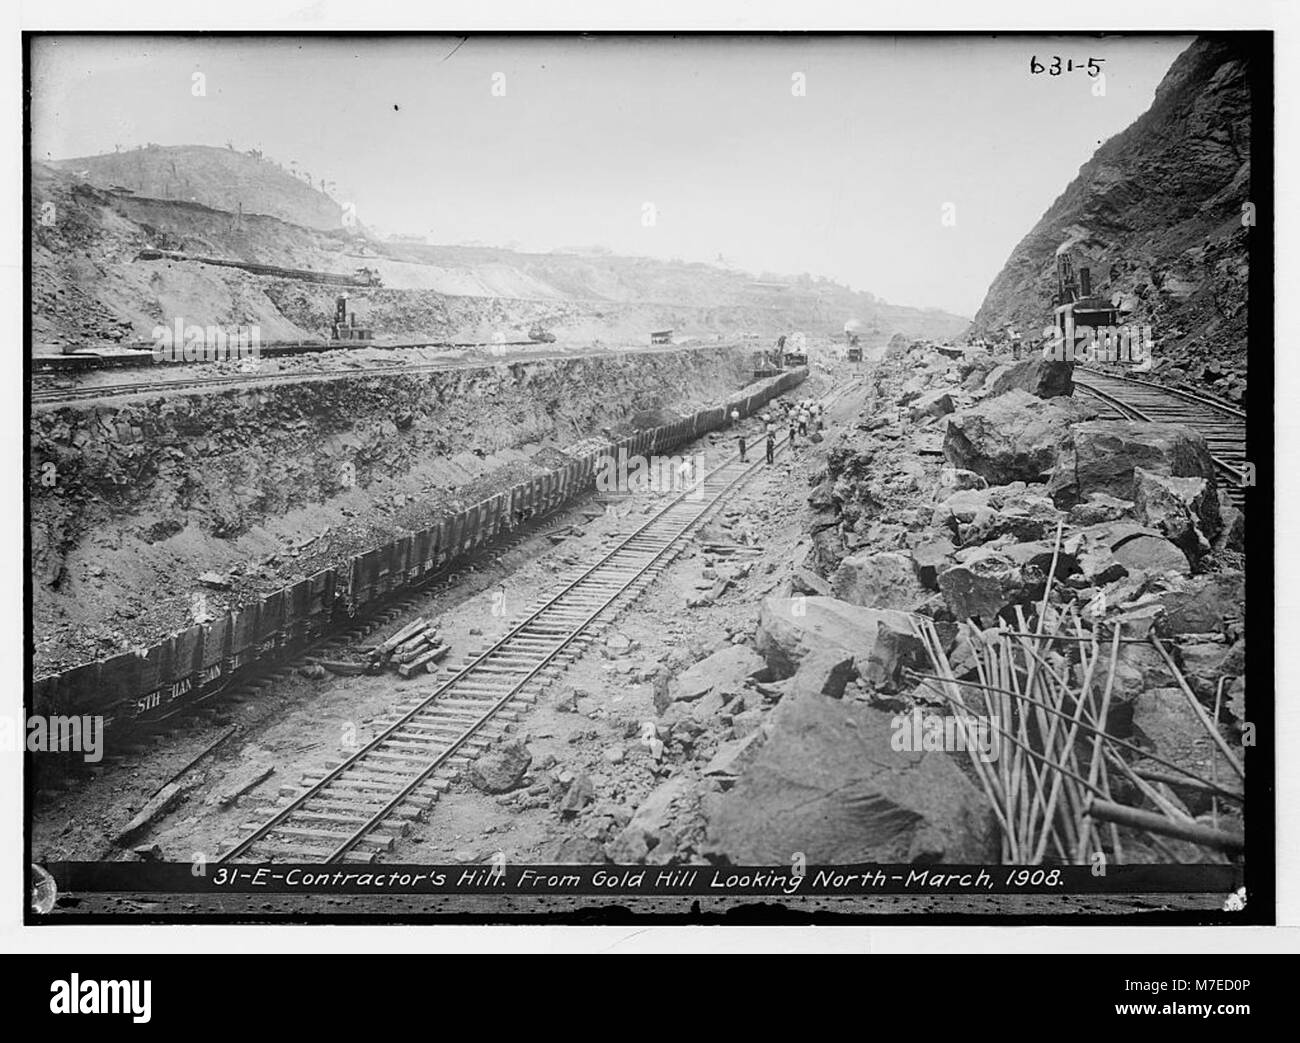 Panama Canal in construction- Contractor's Hill, from Gold Hill looking north LCCN2014683055 - Stock Image